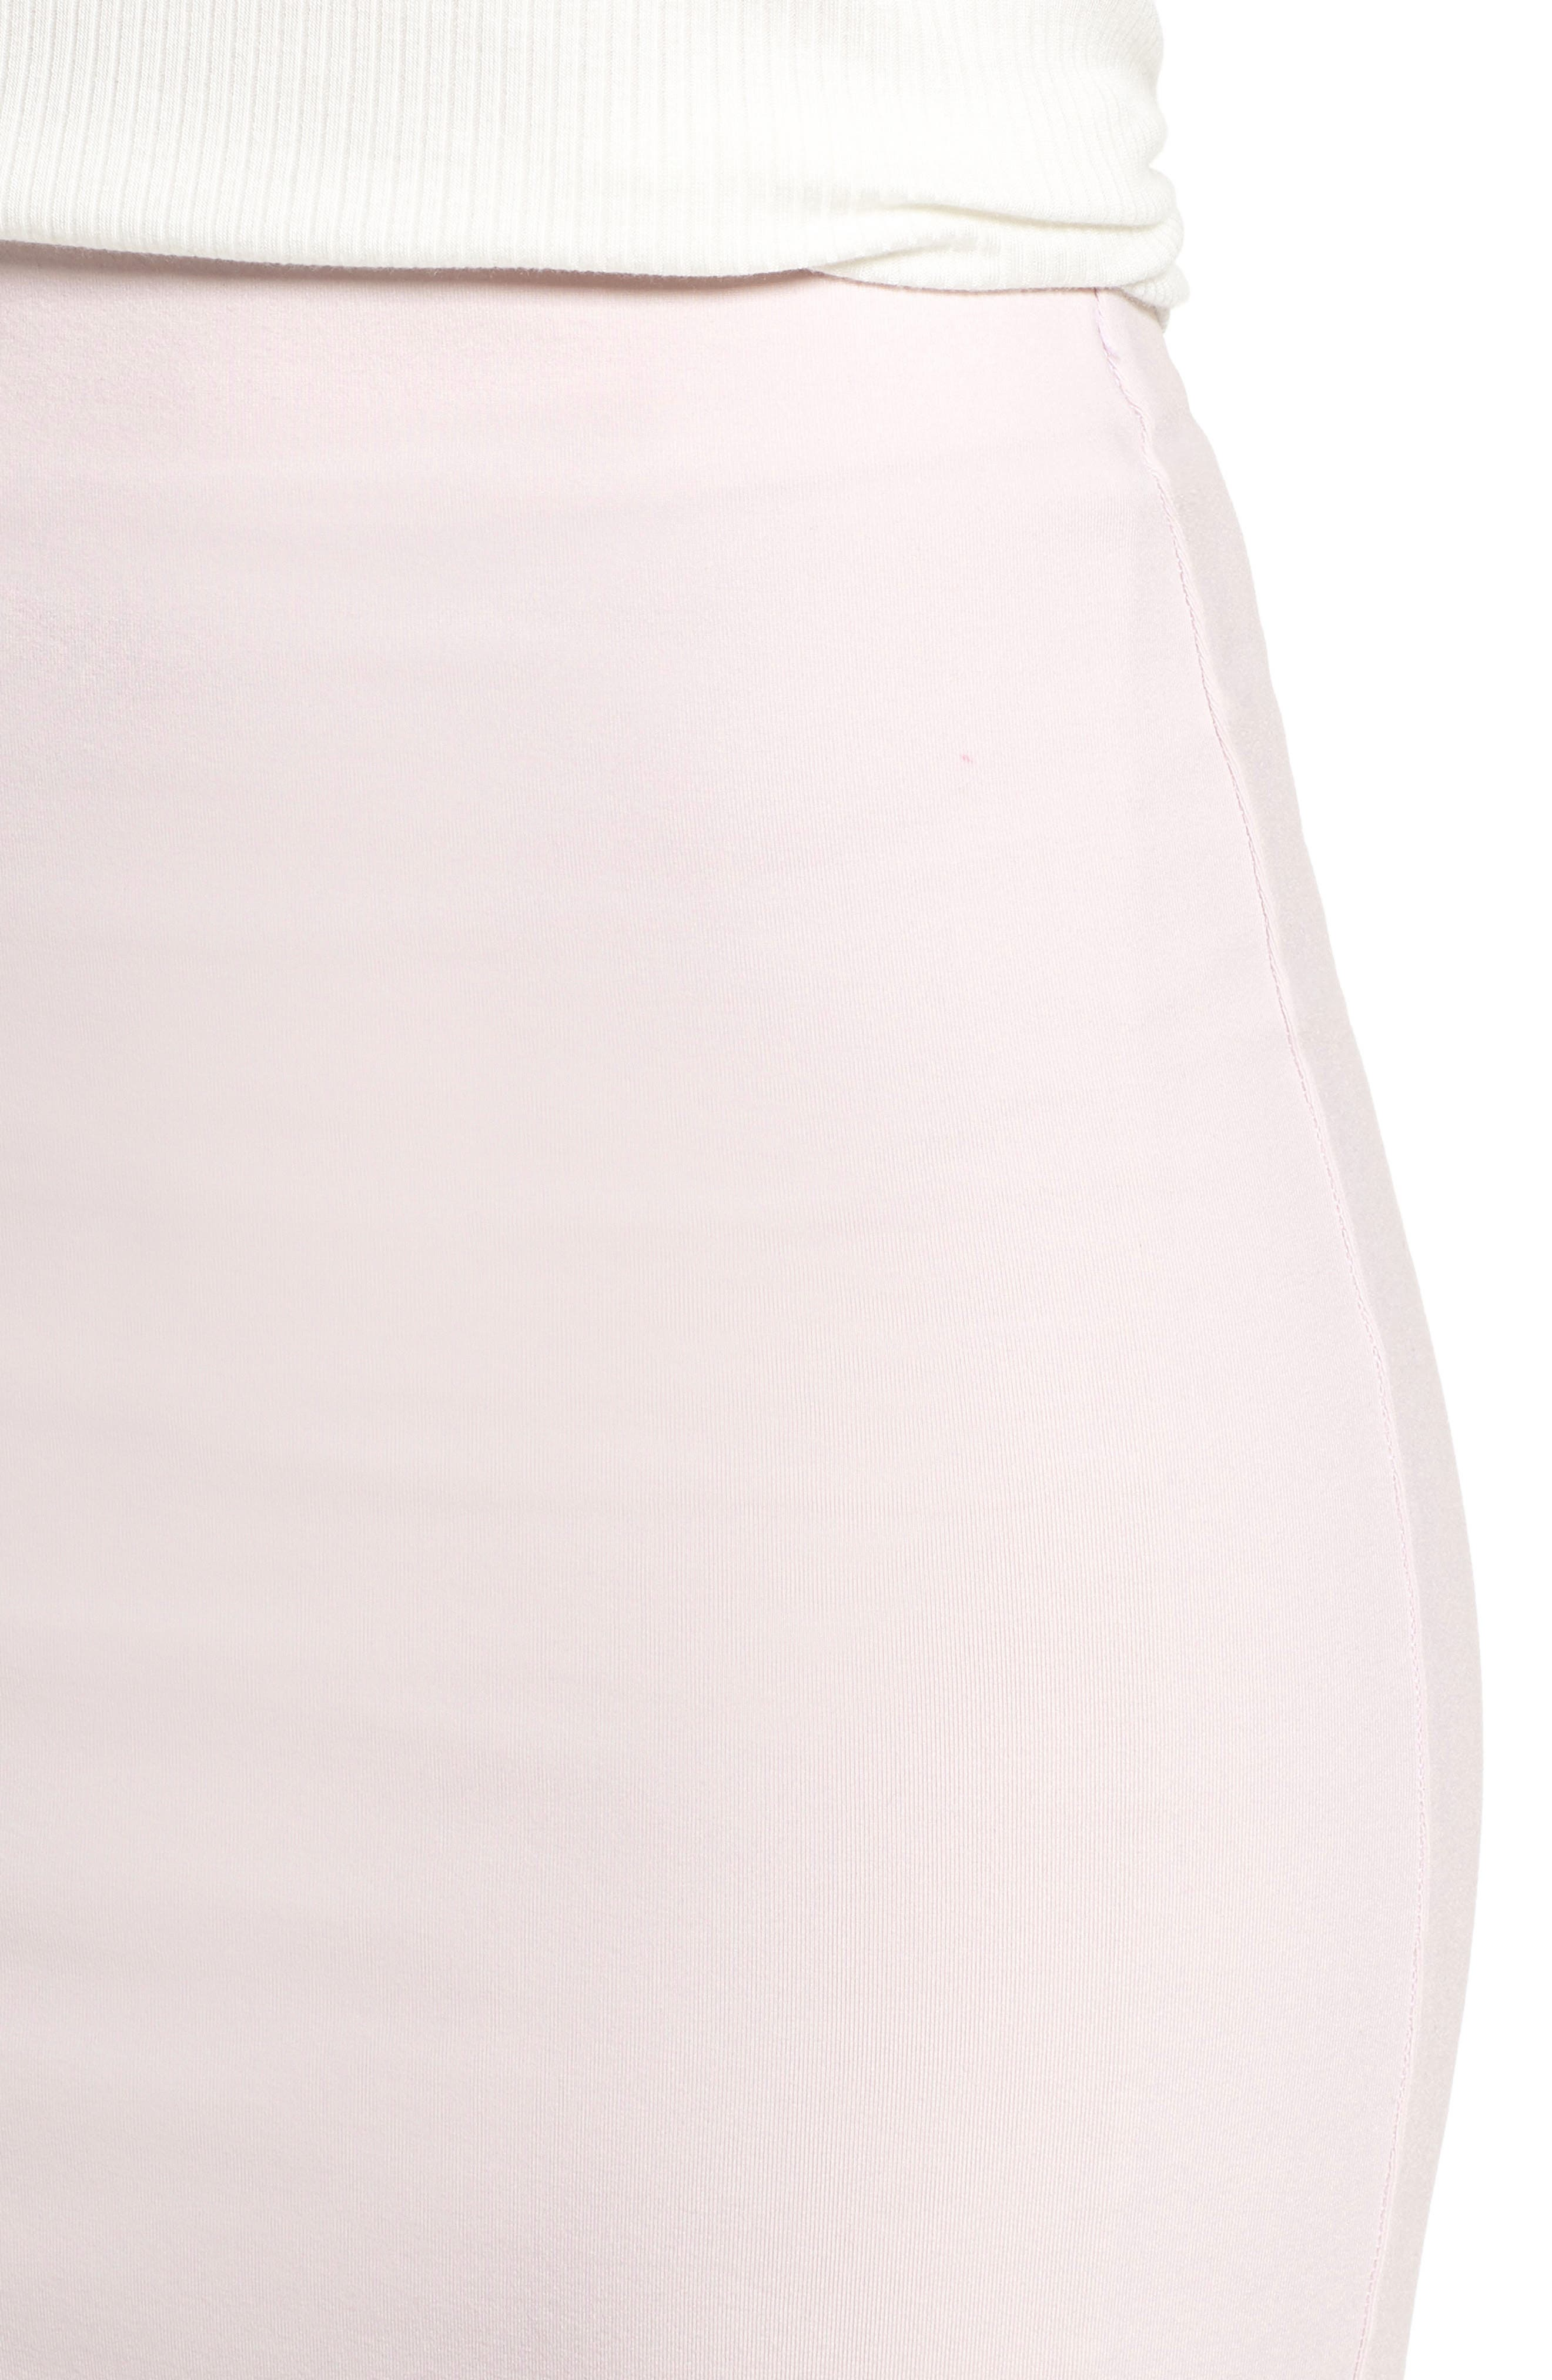 Tube High Rise Pencil Skirt,                             Alternate thumbnail 4, color,                             Soft Pink